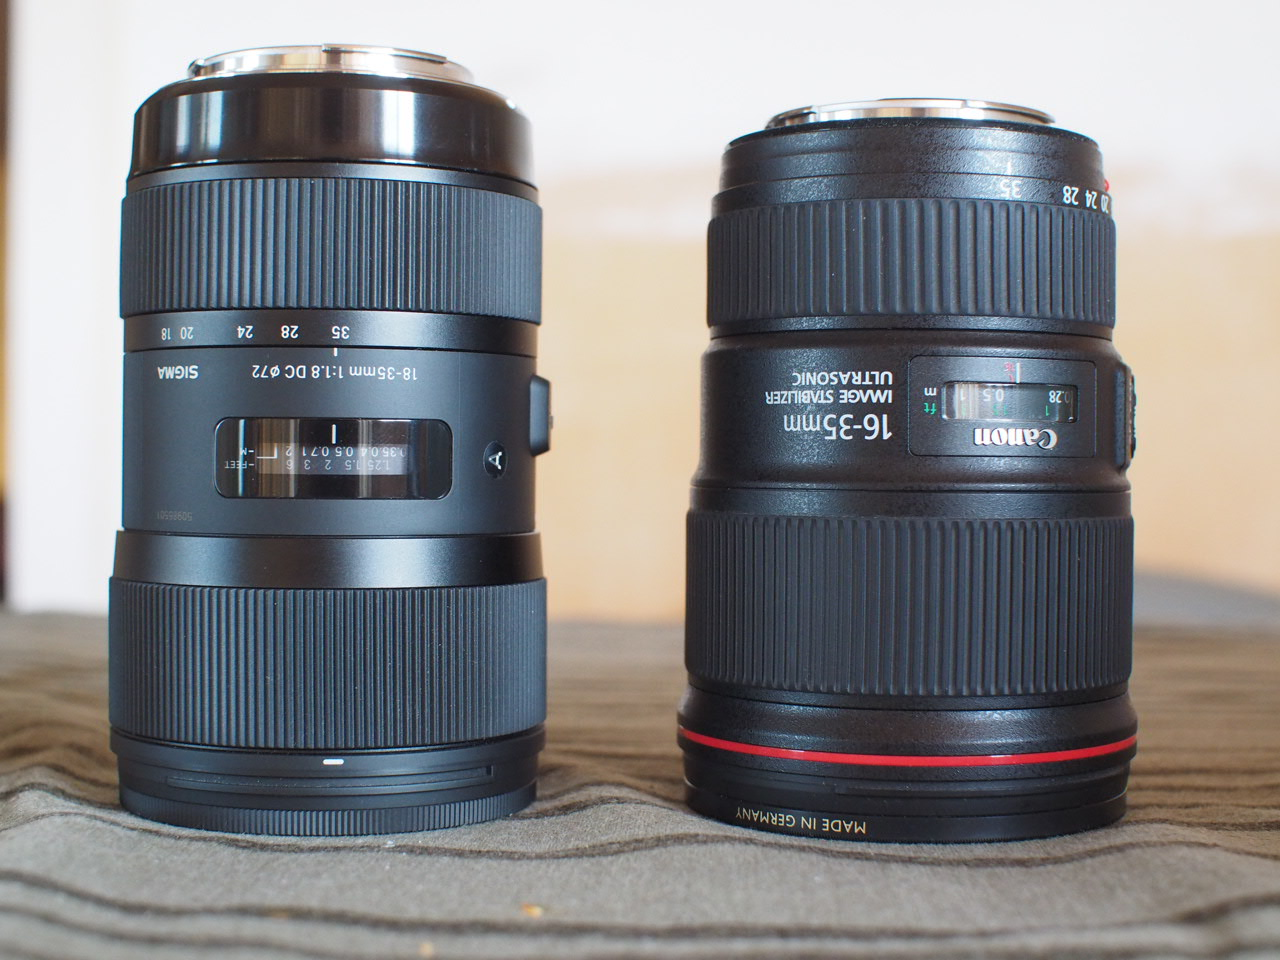 Adapted Sigma DC 18-35mm f1.8 vs adapted Canon 16-35 F4L IS USM both ...